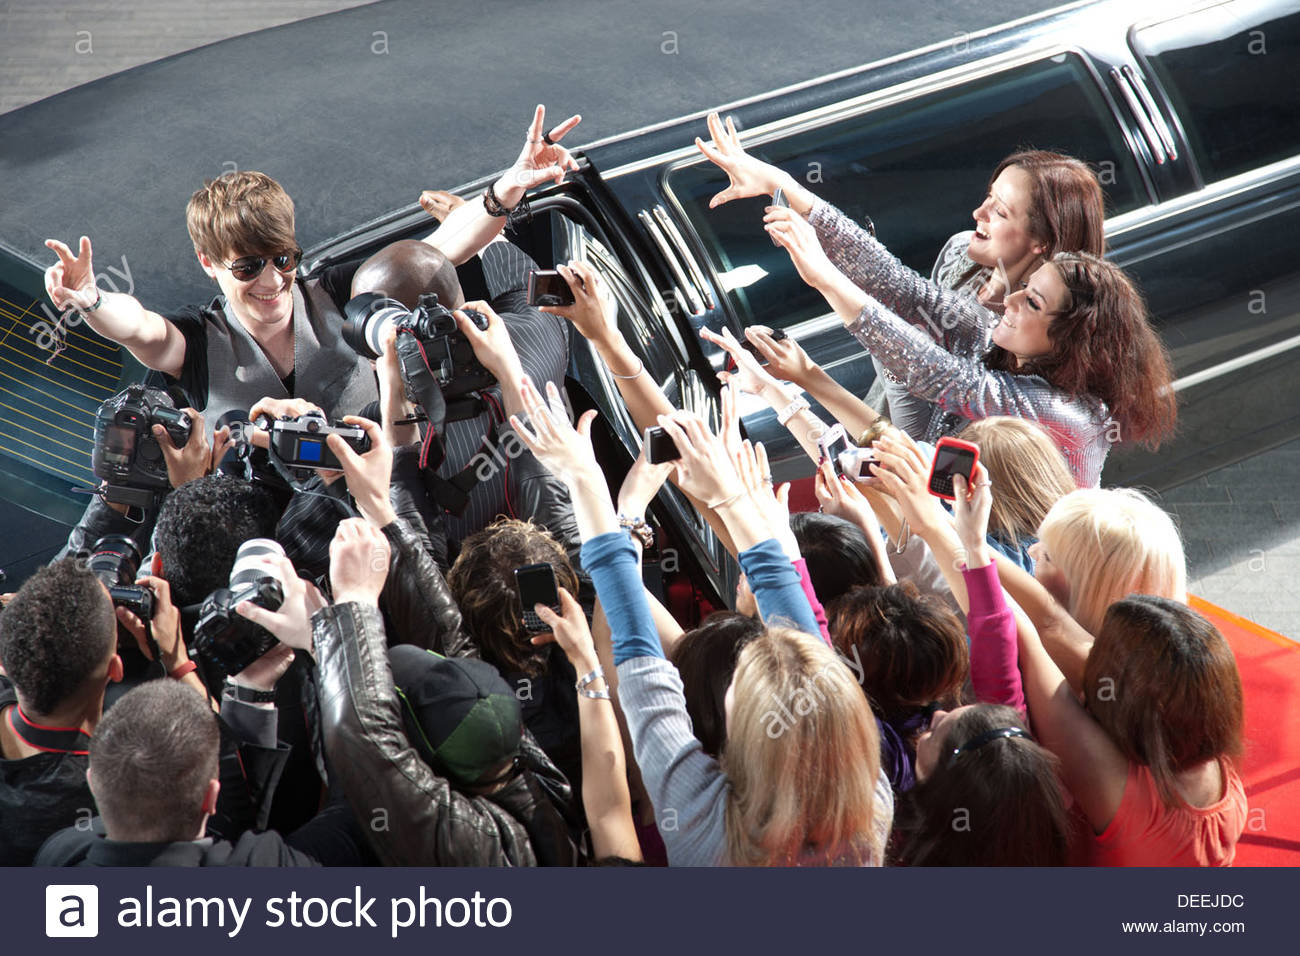 Celebrity emerging from limo towards paparazzi - Stock Image